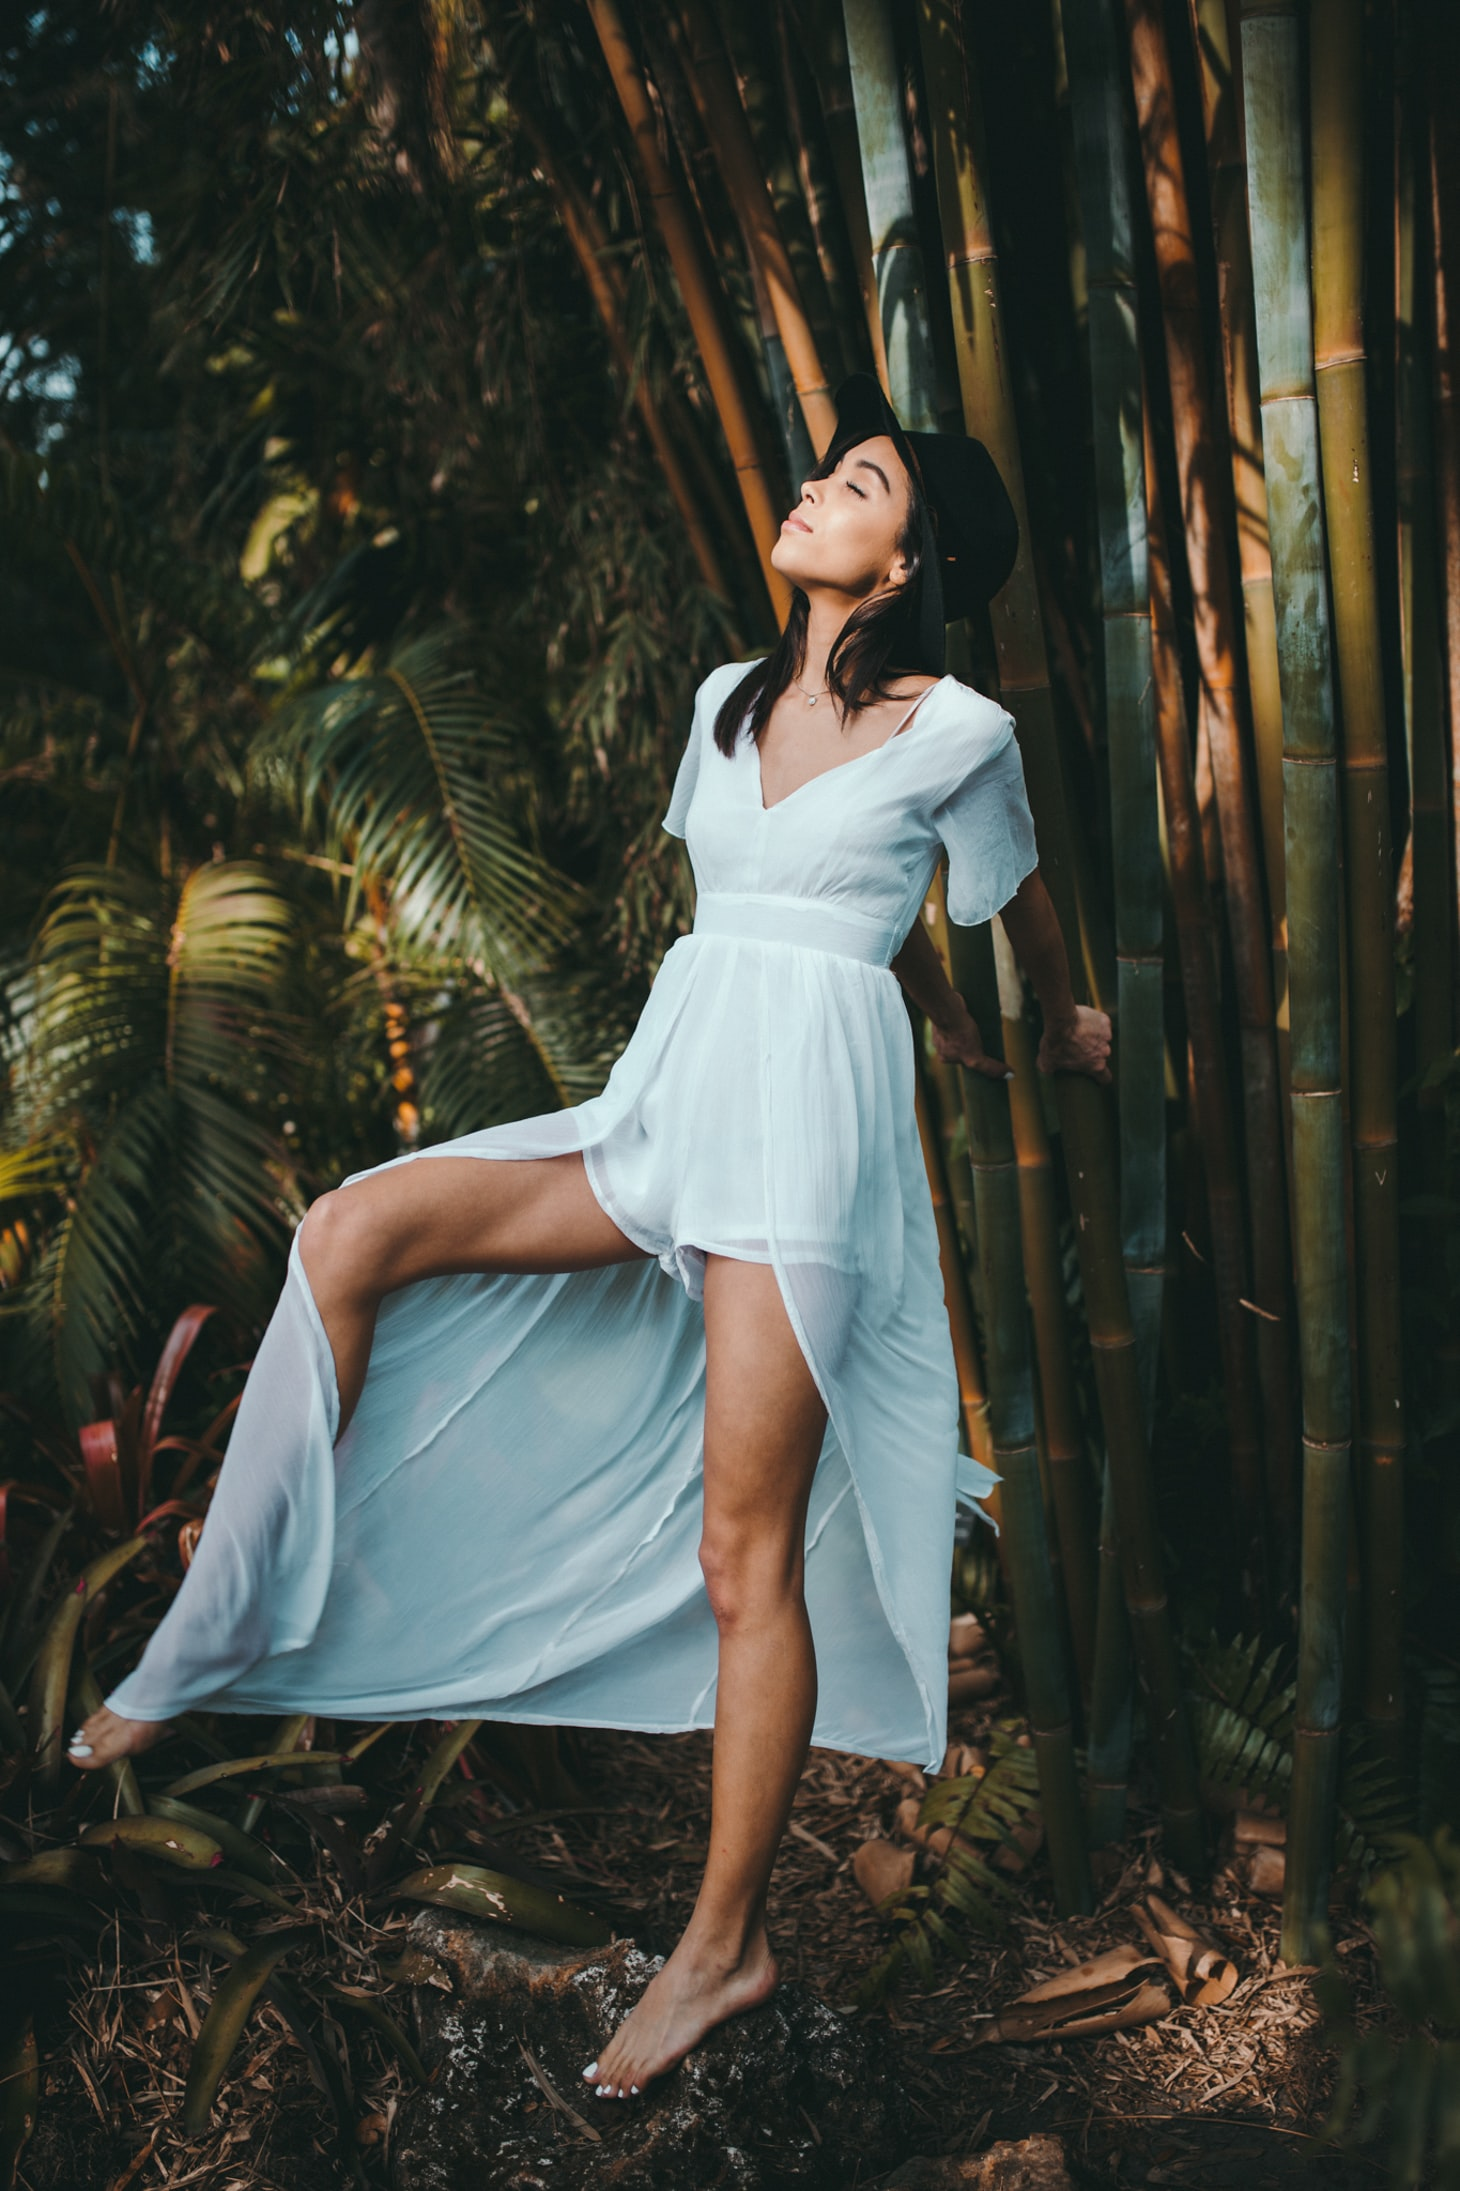 100 Actress Pictures Hd Download Free Images On Unsplash